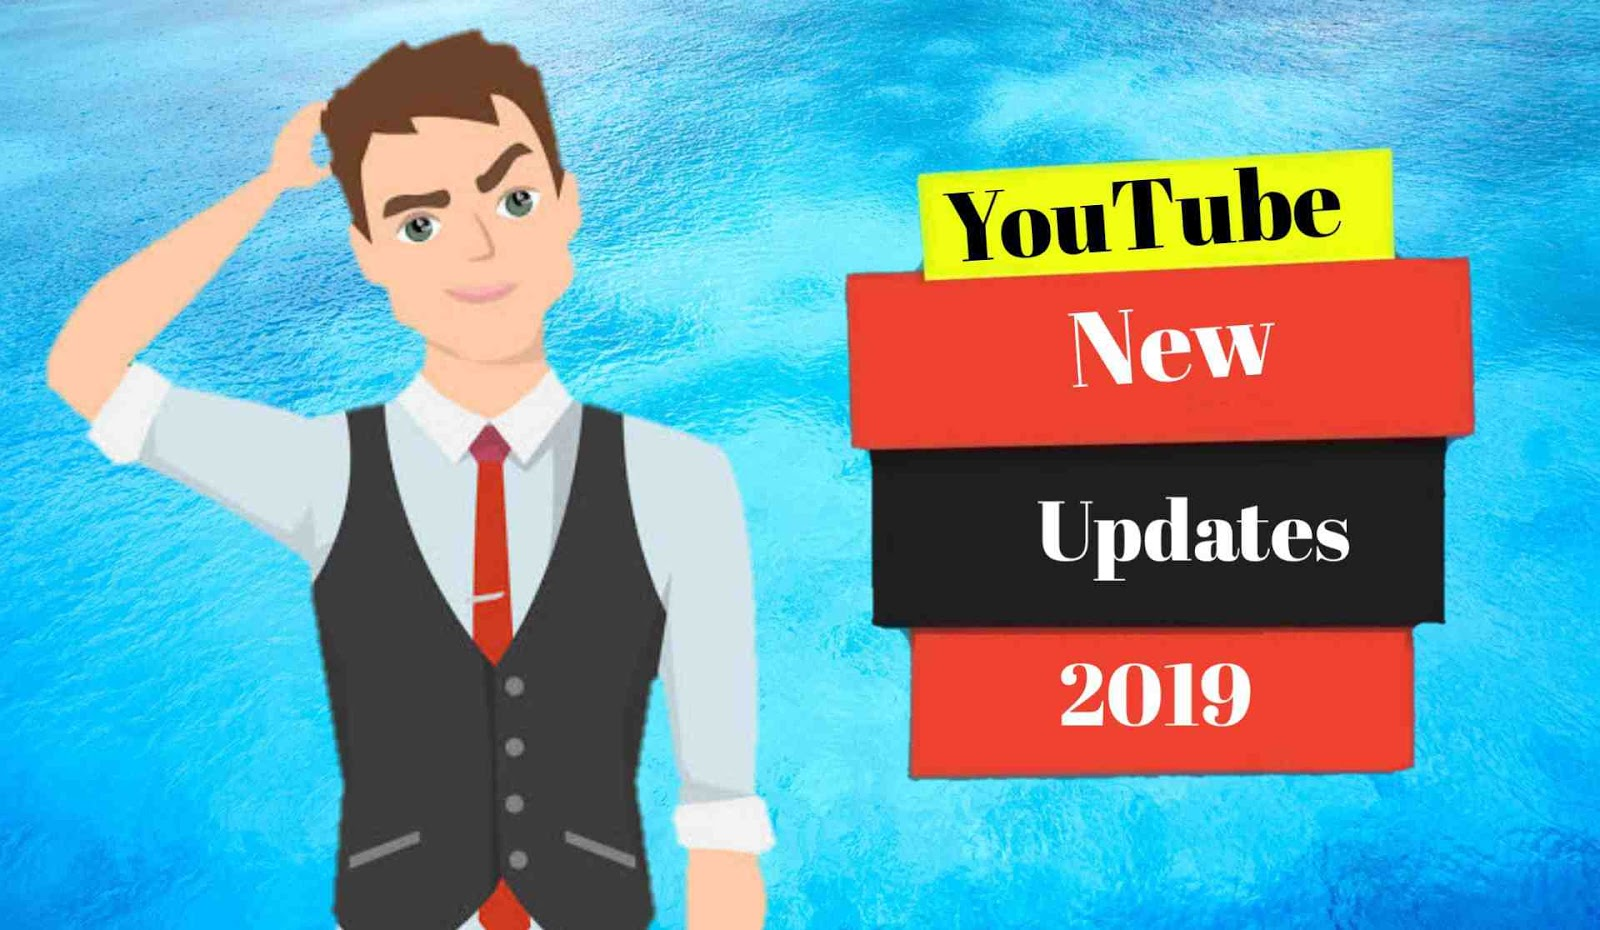 YouTube will suspend all channel || YouTube new update